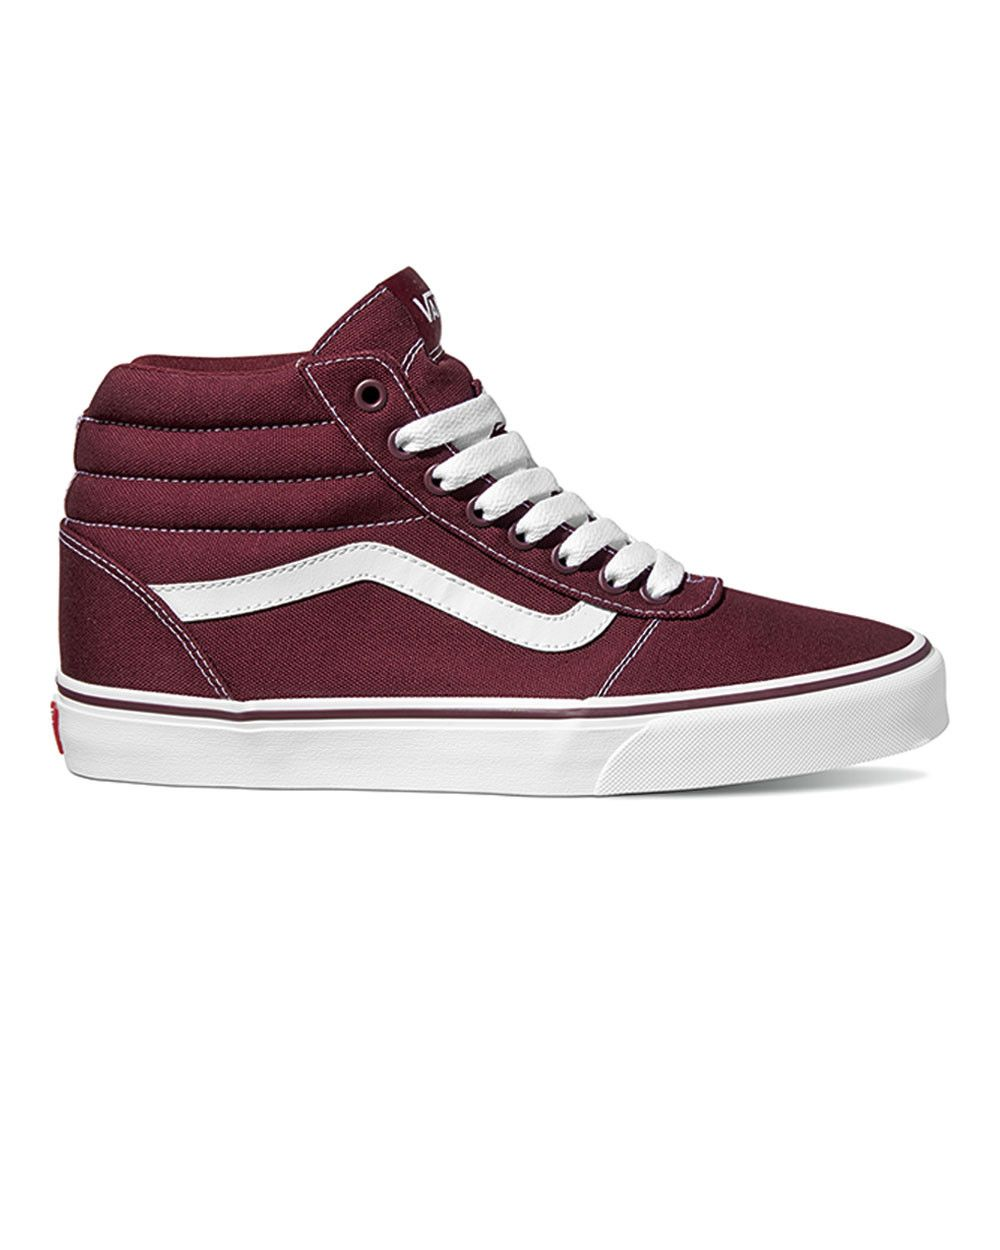 Vans Ward Hi (port royale white). Available in size 13-15.  size13  size14   size15  bigfeet  bigshoes  bigtrainers  vans  footwear  tall  tallmen   ... b33d37288